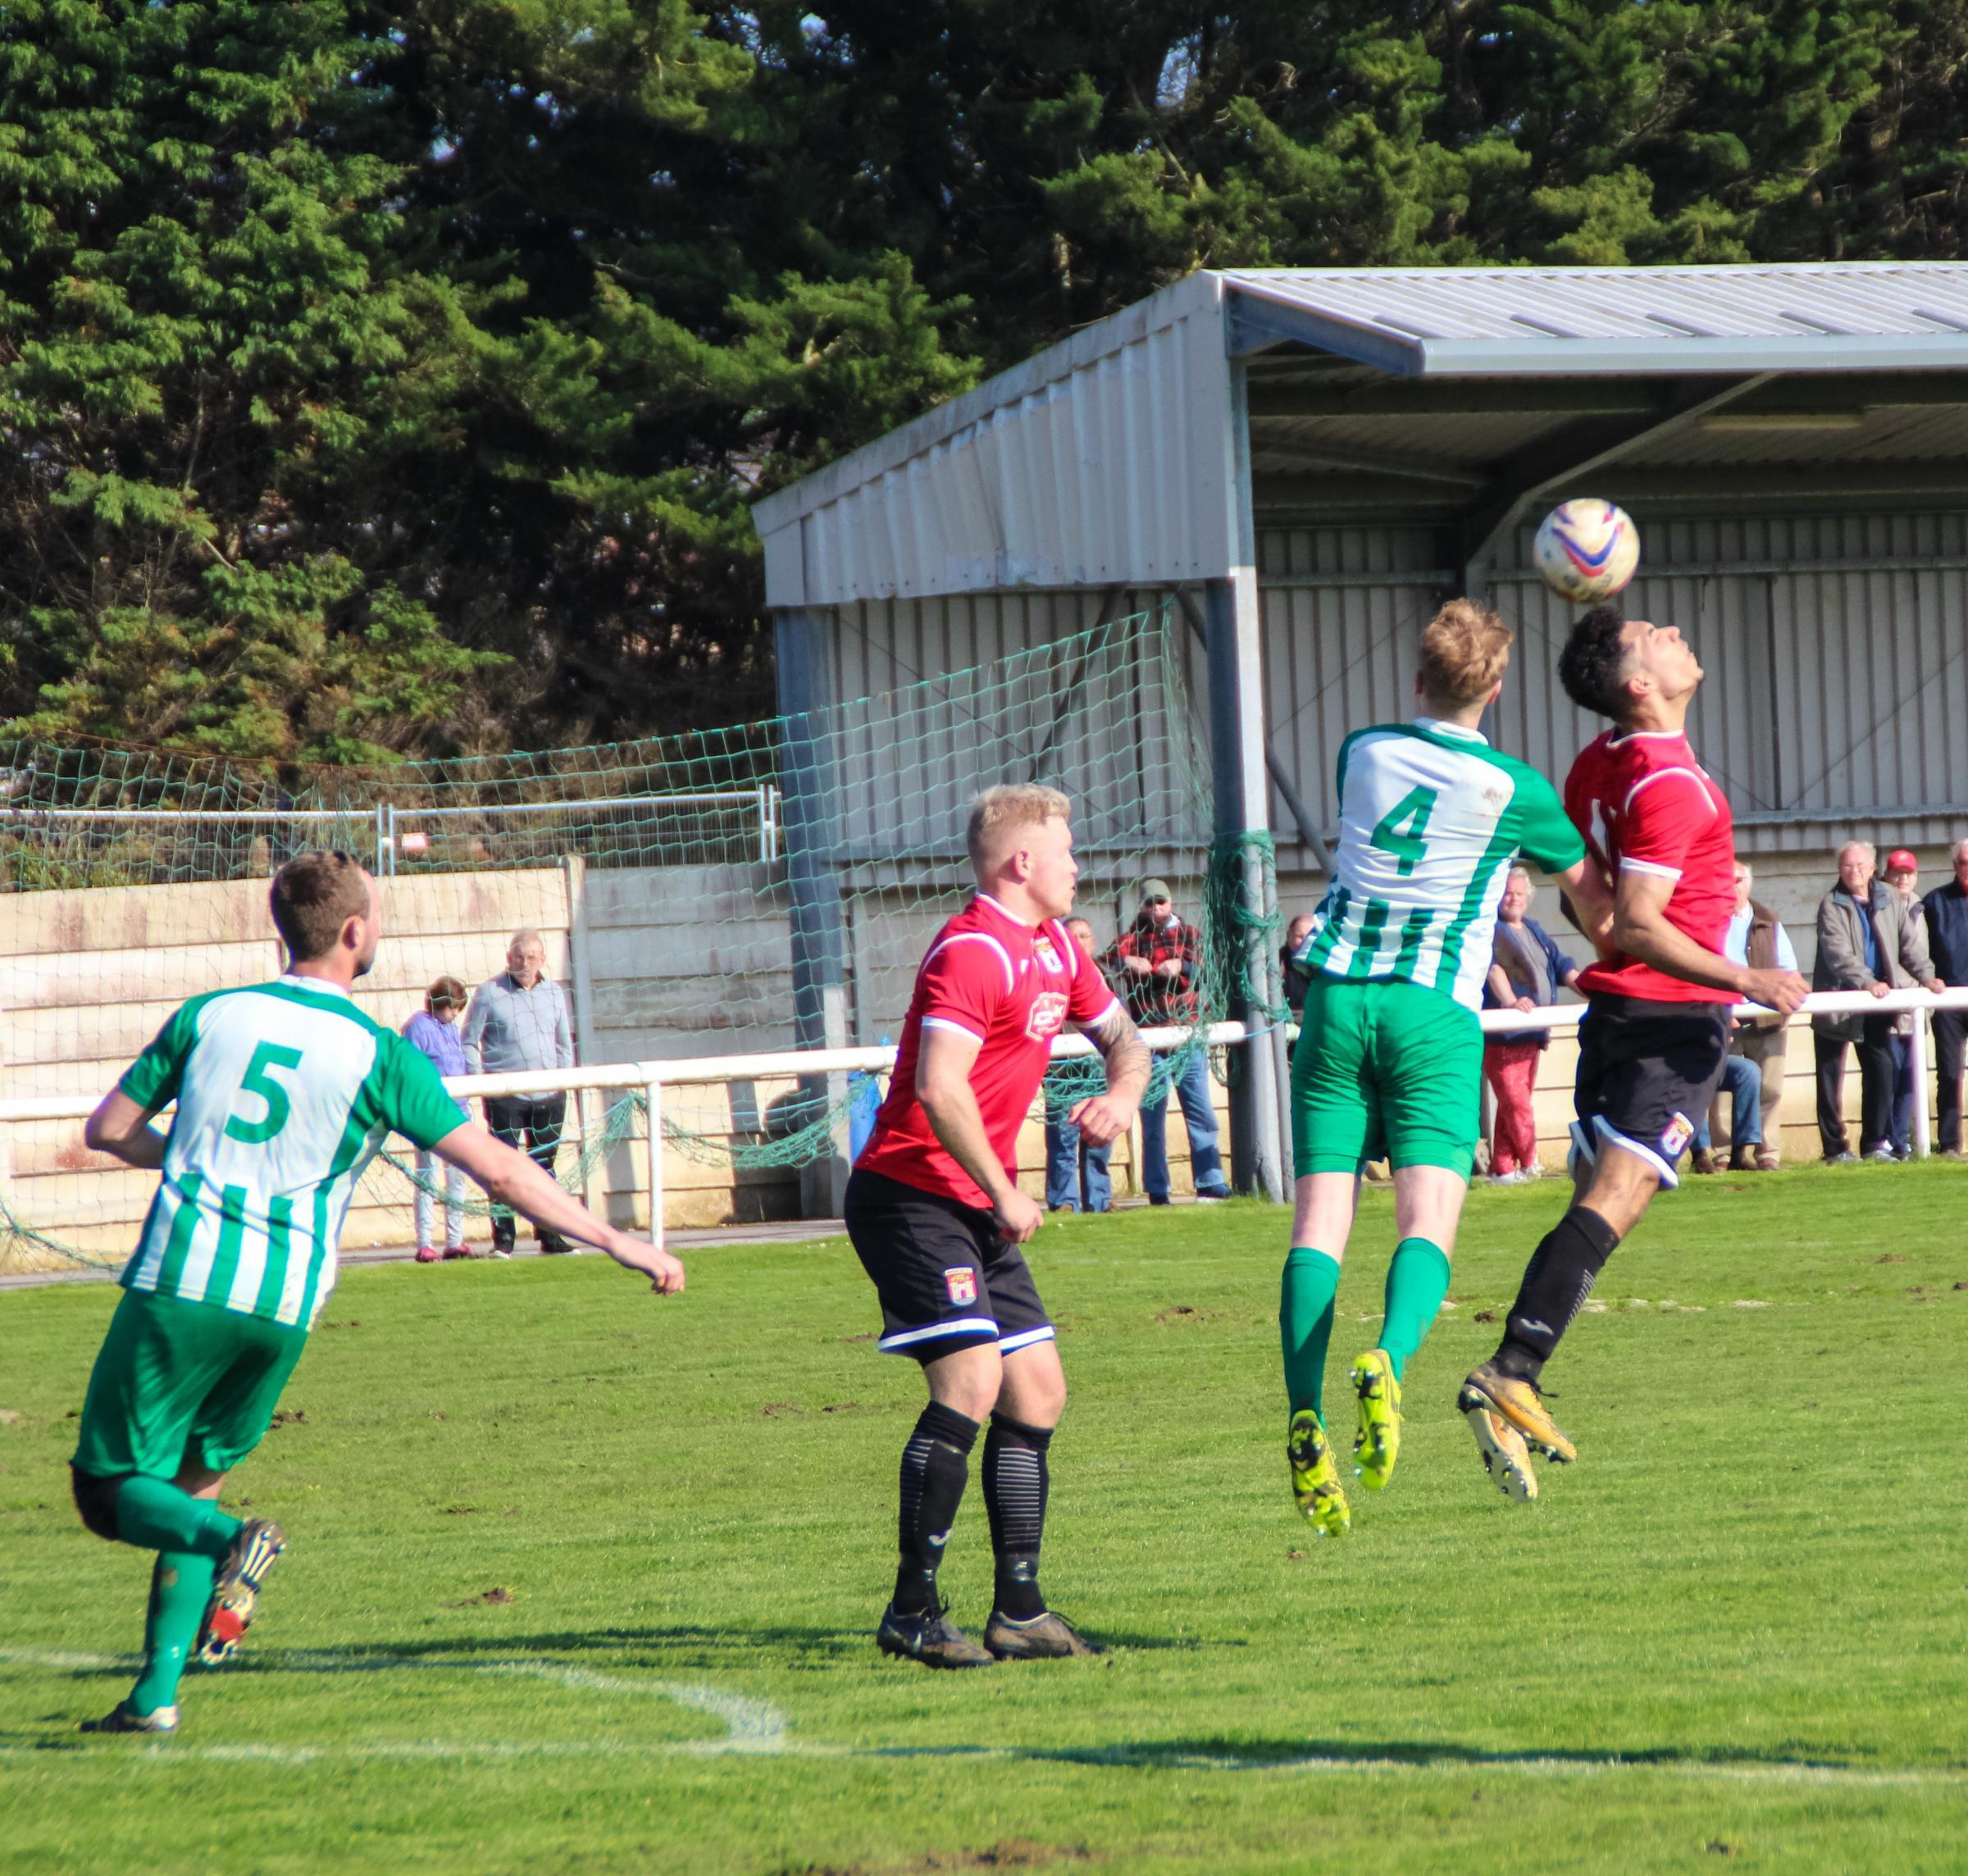 LEVELLER: Leigh Bailey, centre, scored a 56th-minute equaliser for Bridport Picture: LOIS BUTCHER